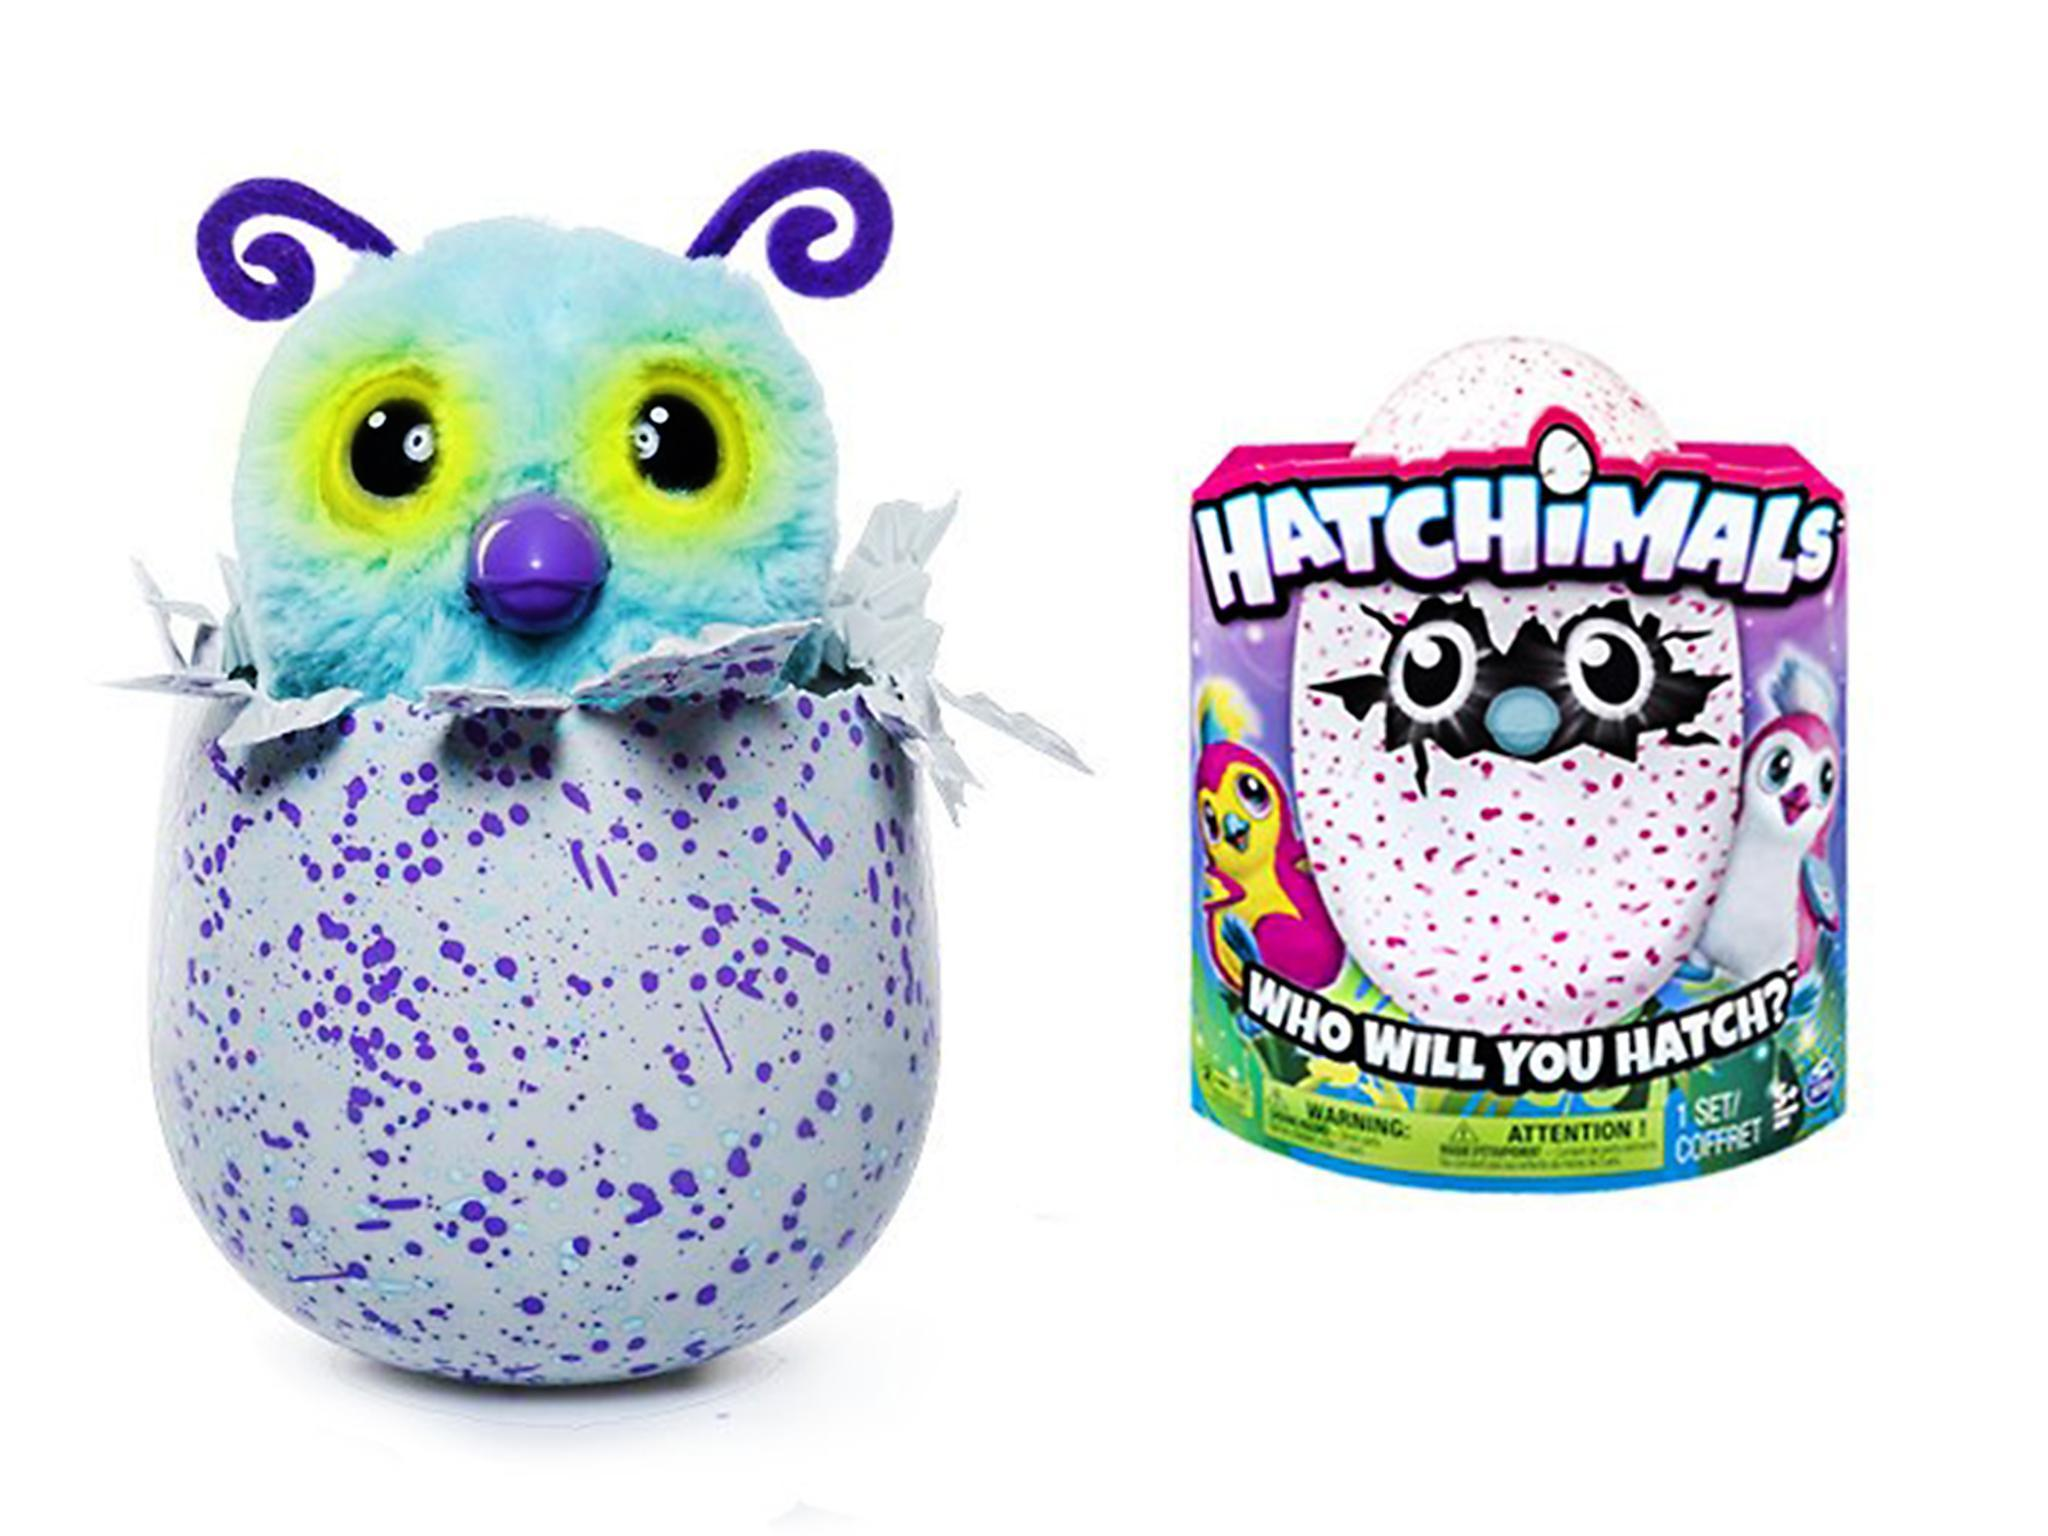 What are Hatchimals and where can I buy them? | The Independent